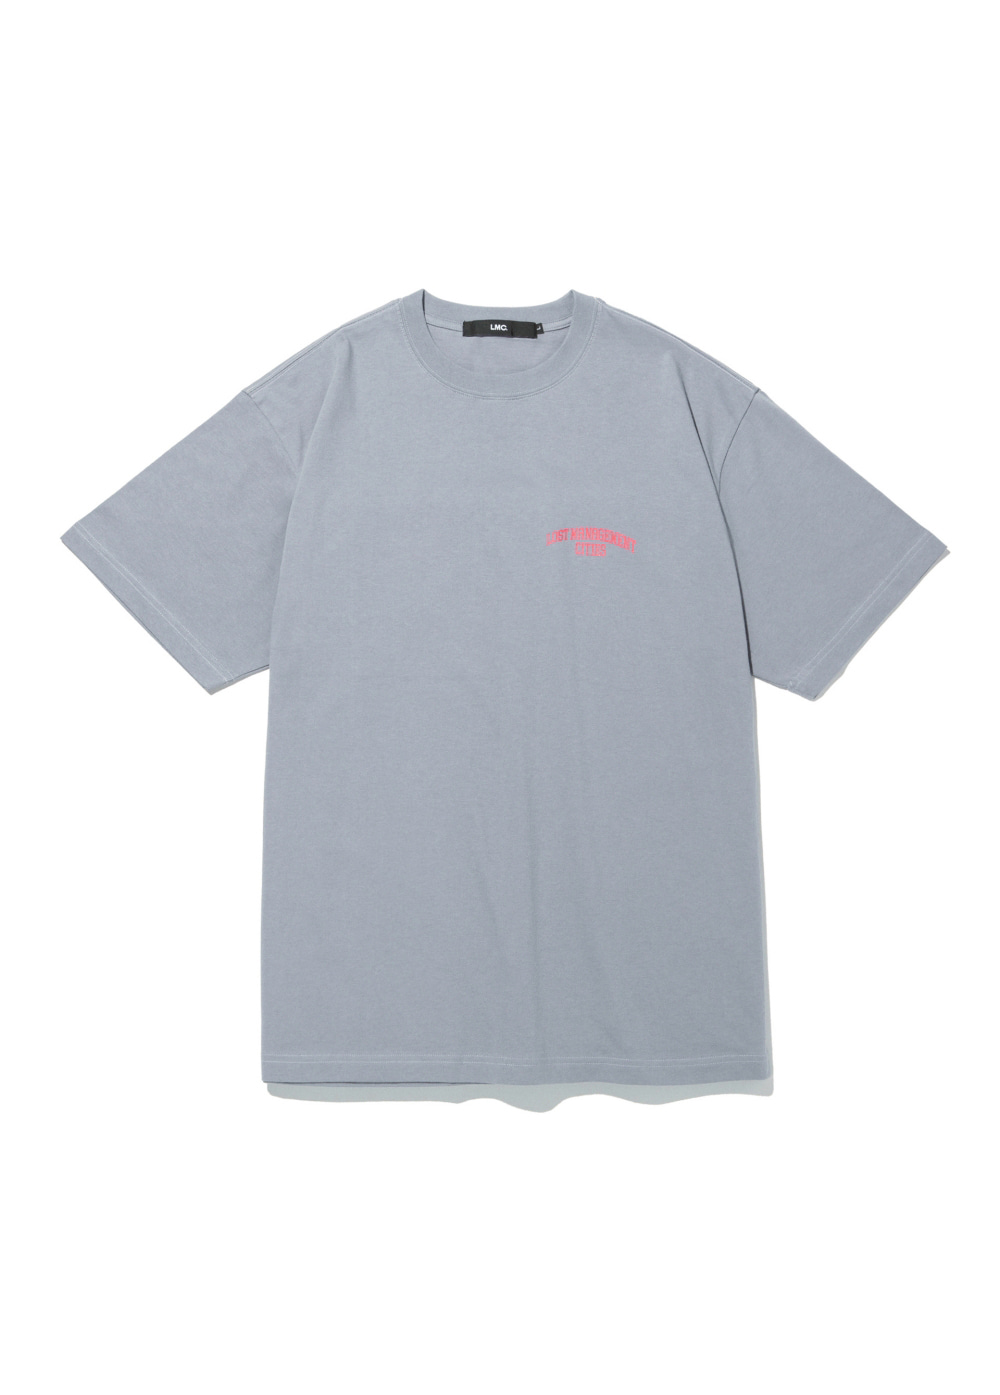 LMC RED LABEL ARCH FN TEE gray